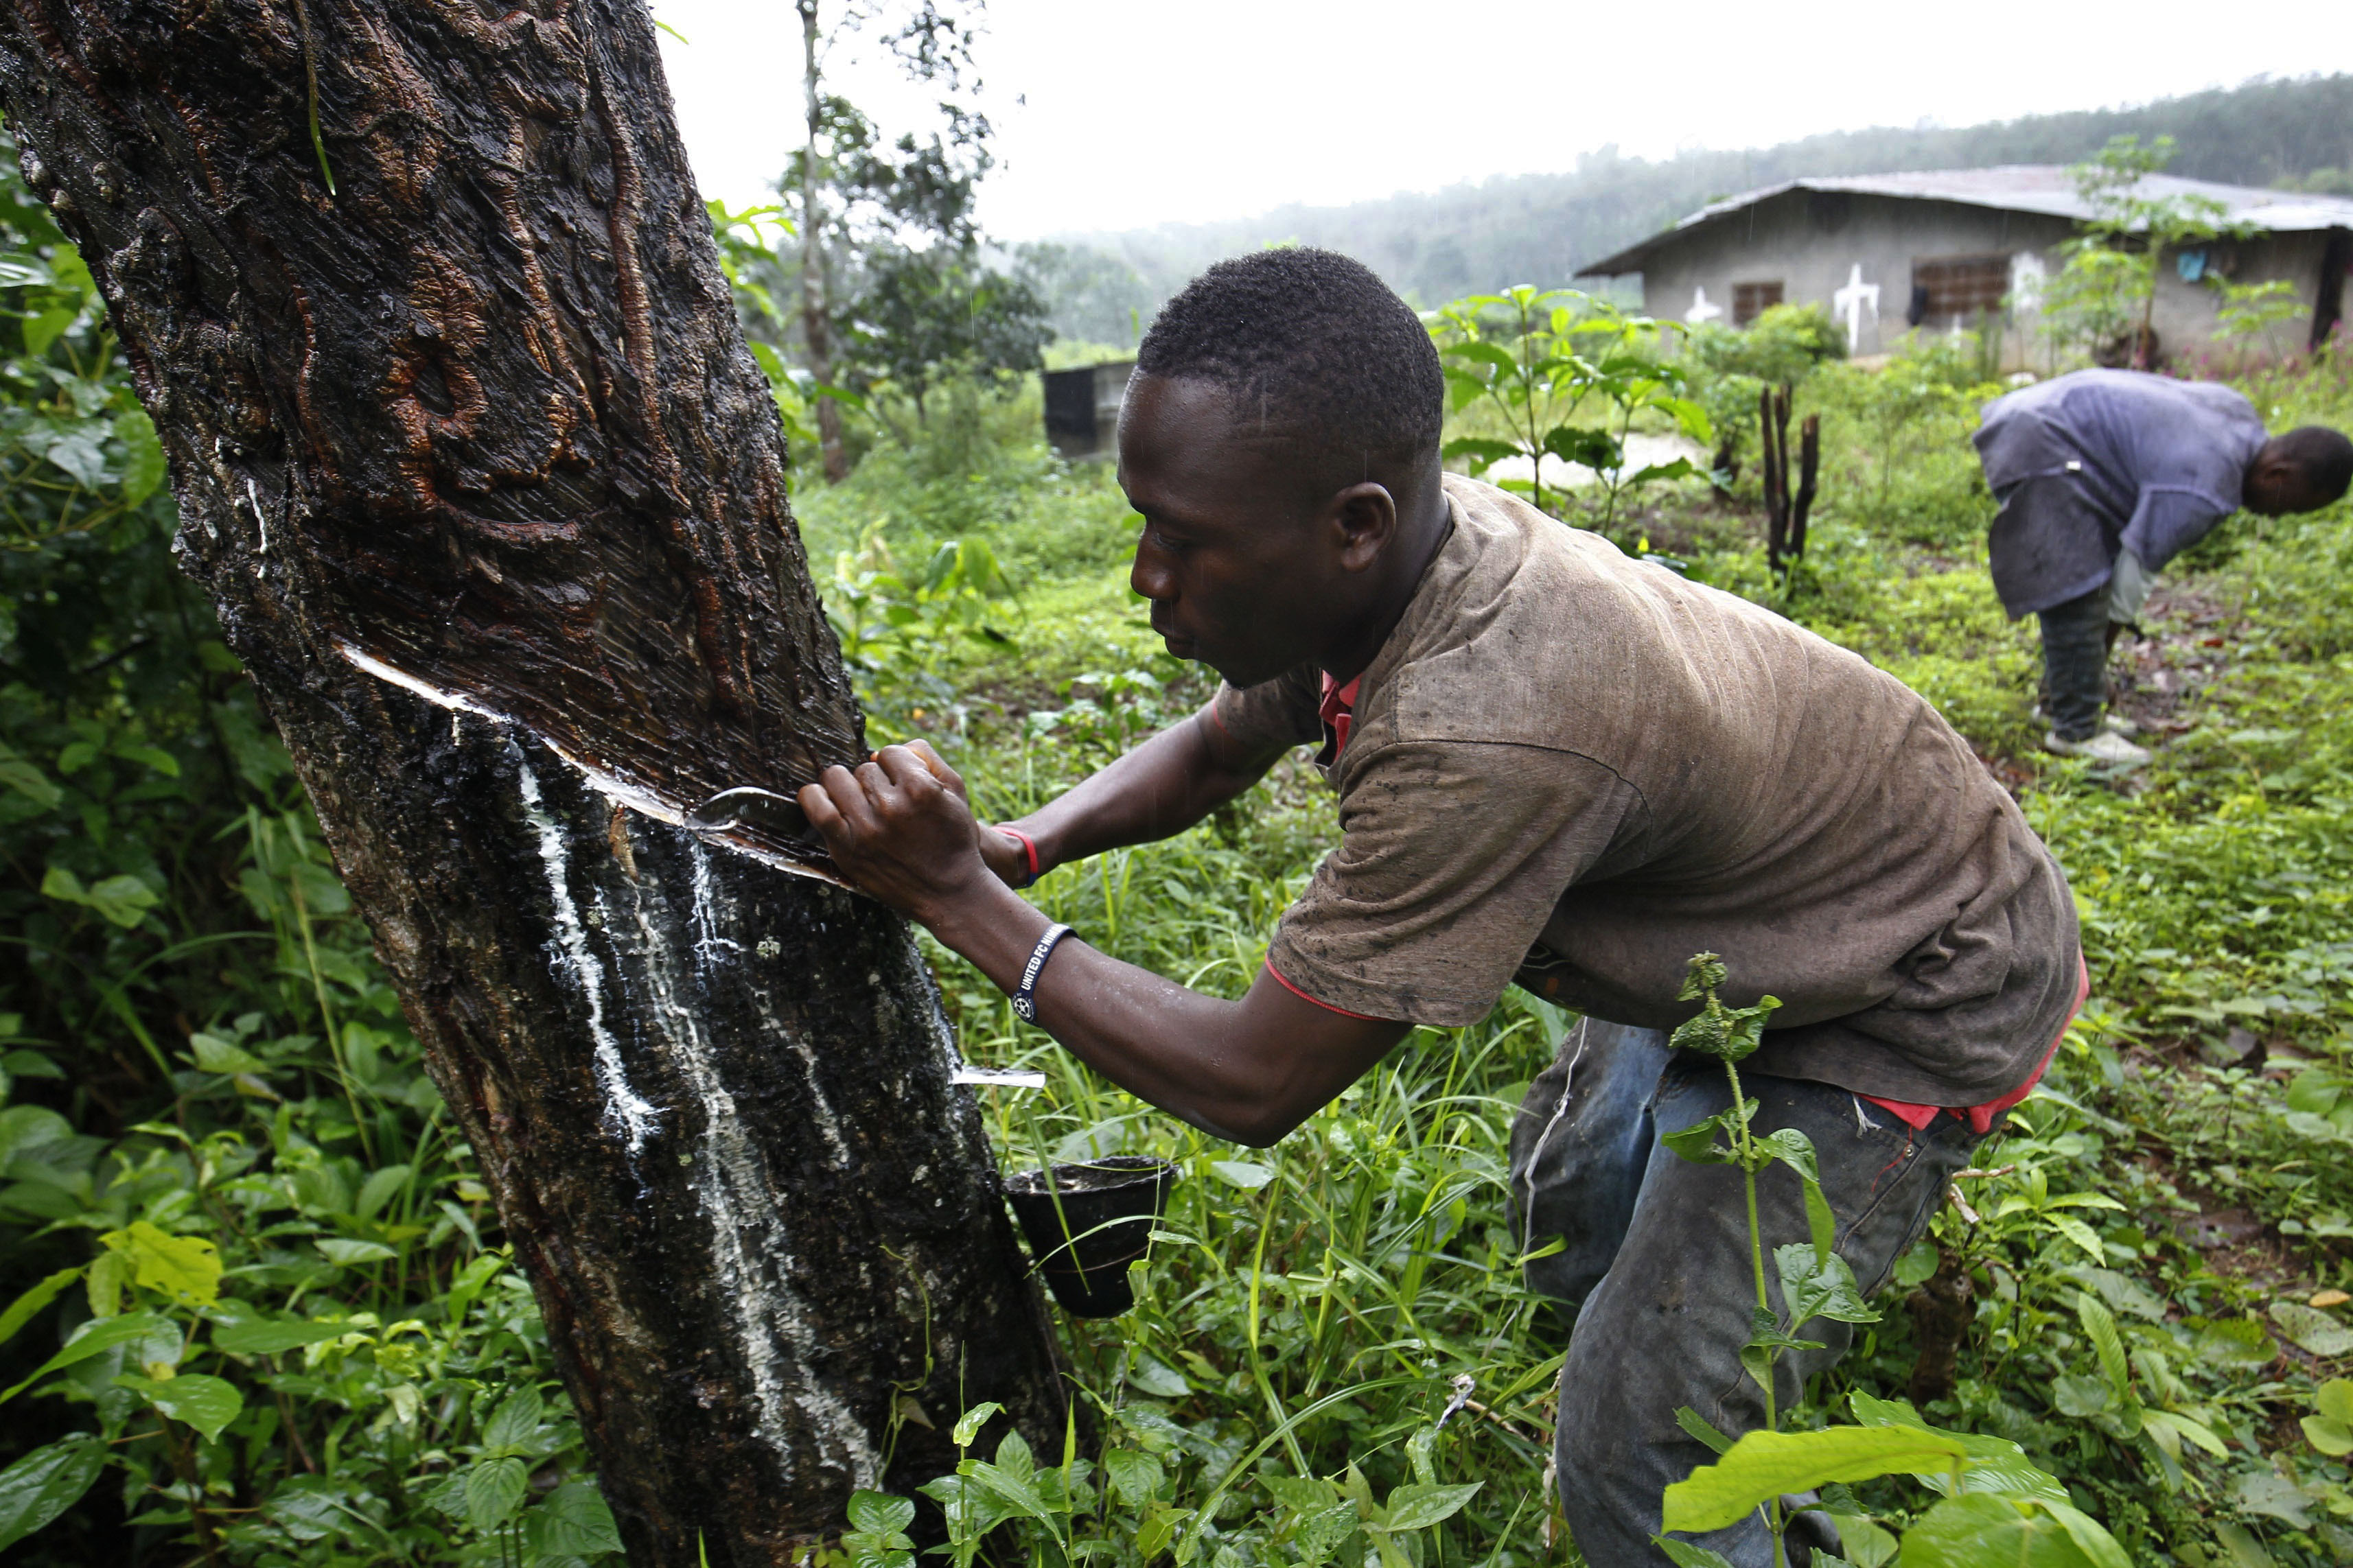 Rubber plantation worker in Liberia - New Europe